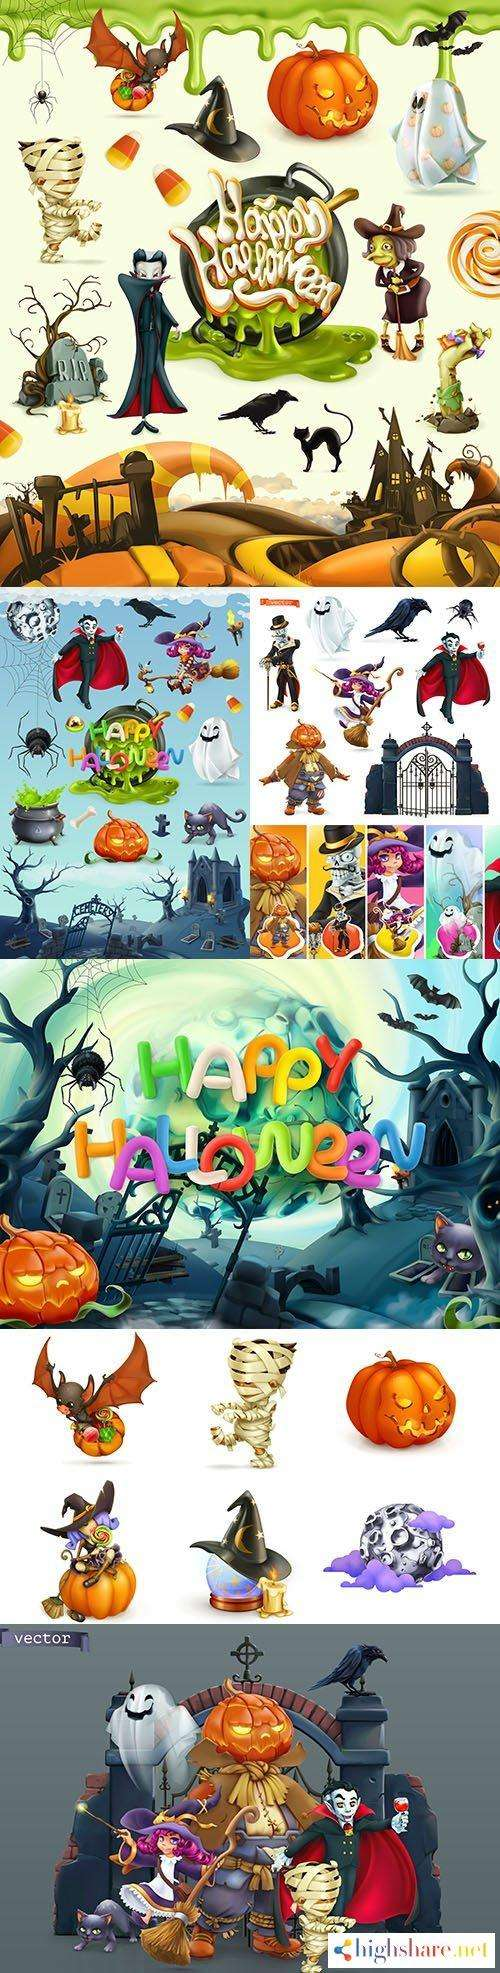 happy halloween and cartoon heroes 3rd realistic illustrations 5f452e6eac32c - Happy Halloween and cartoon heroes 3rd realistic illustrations